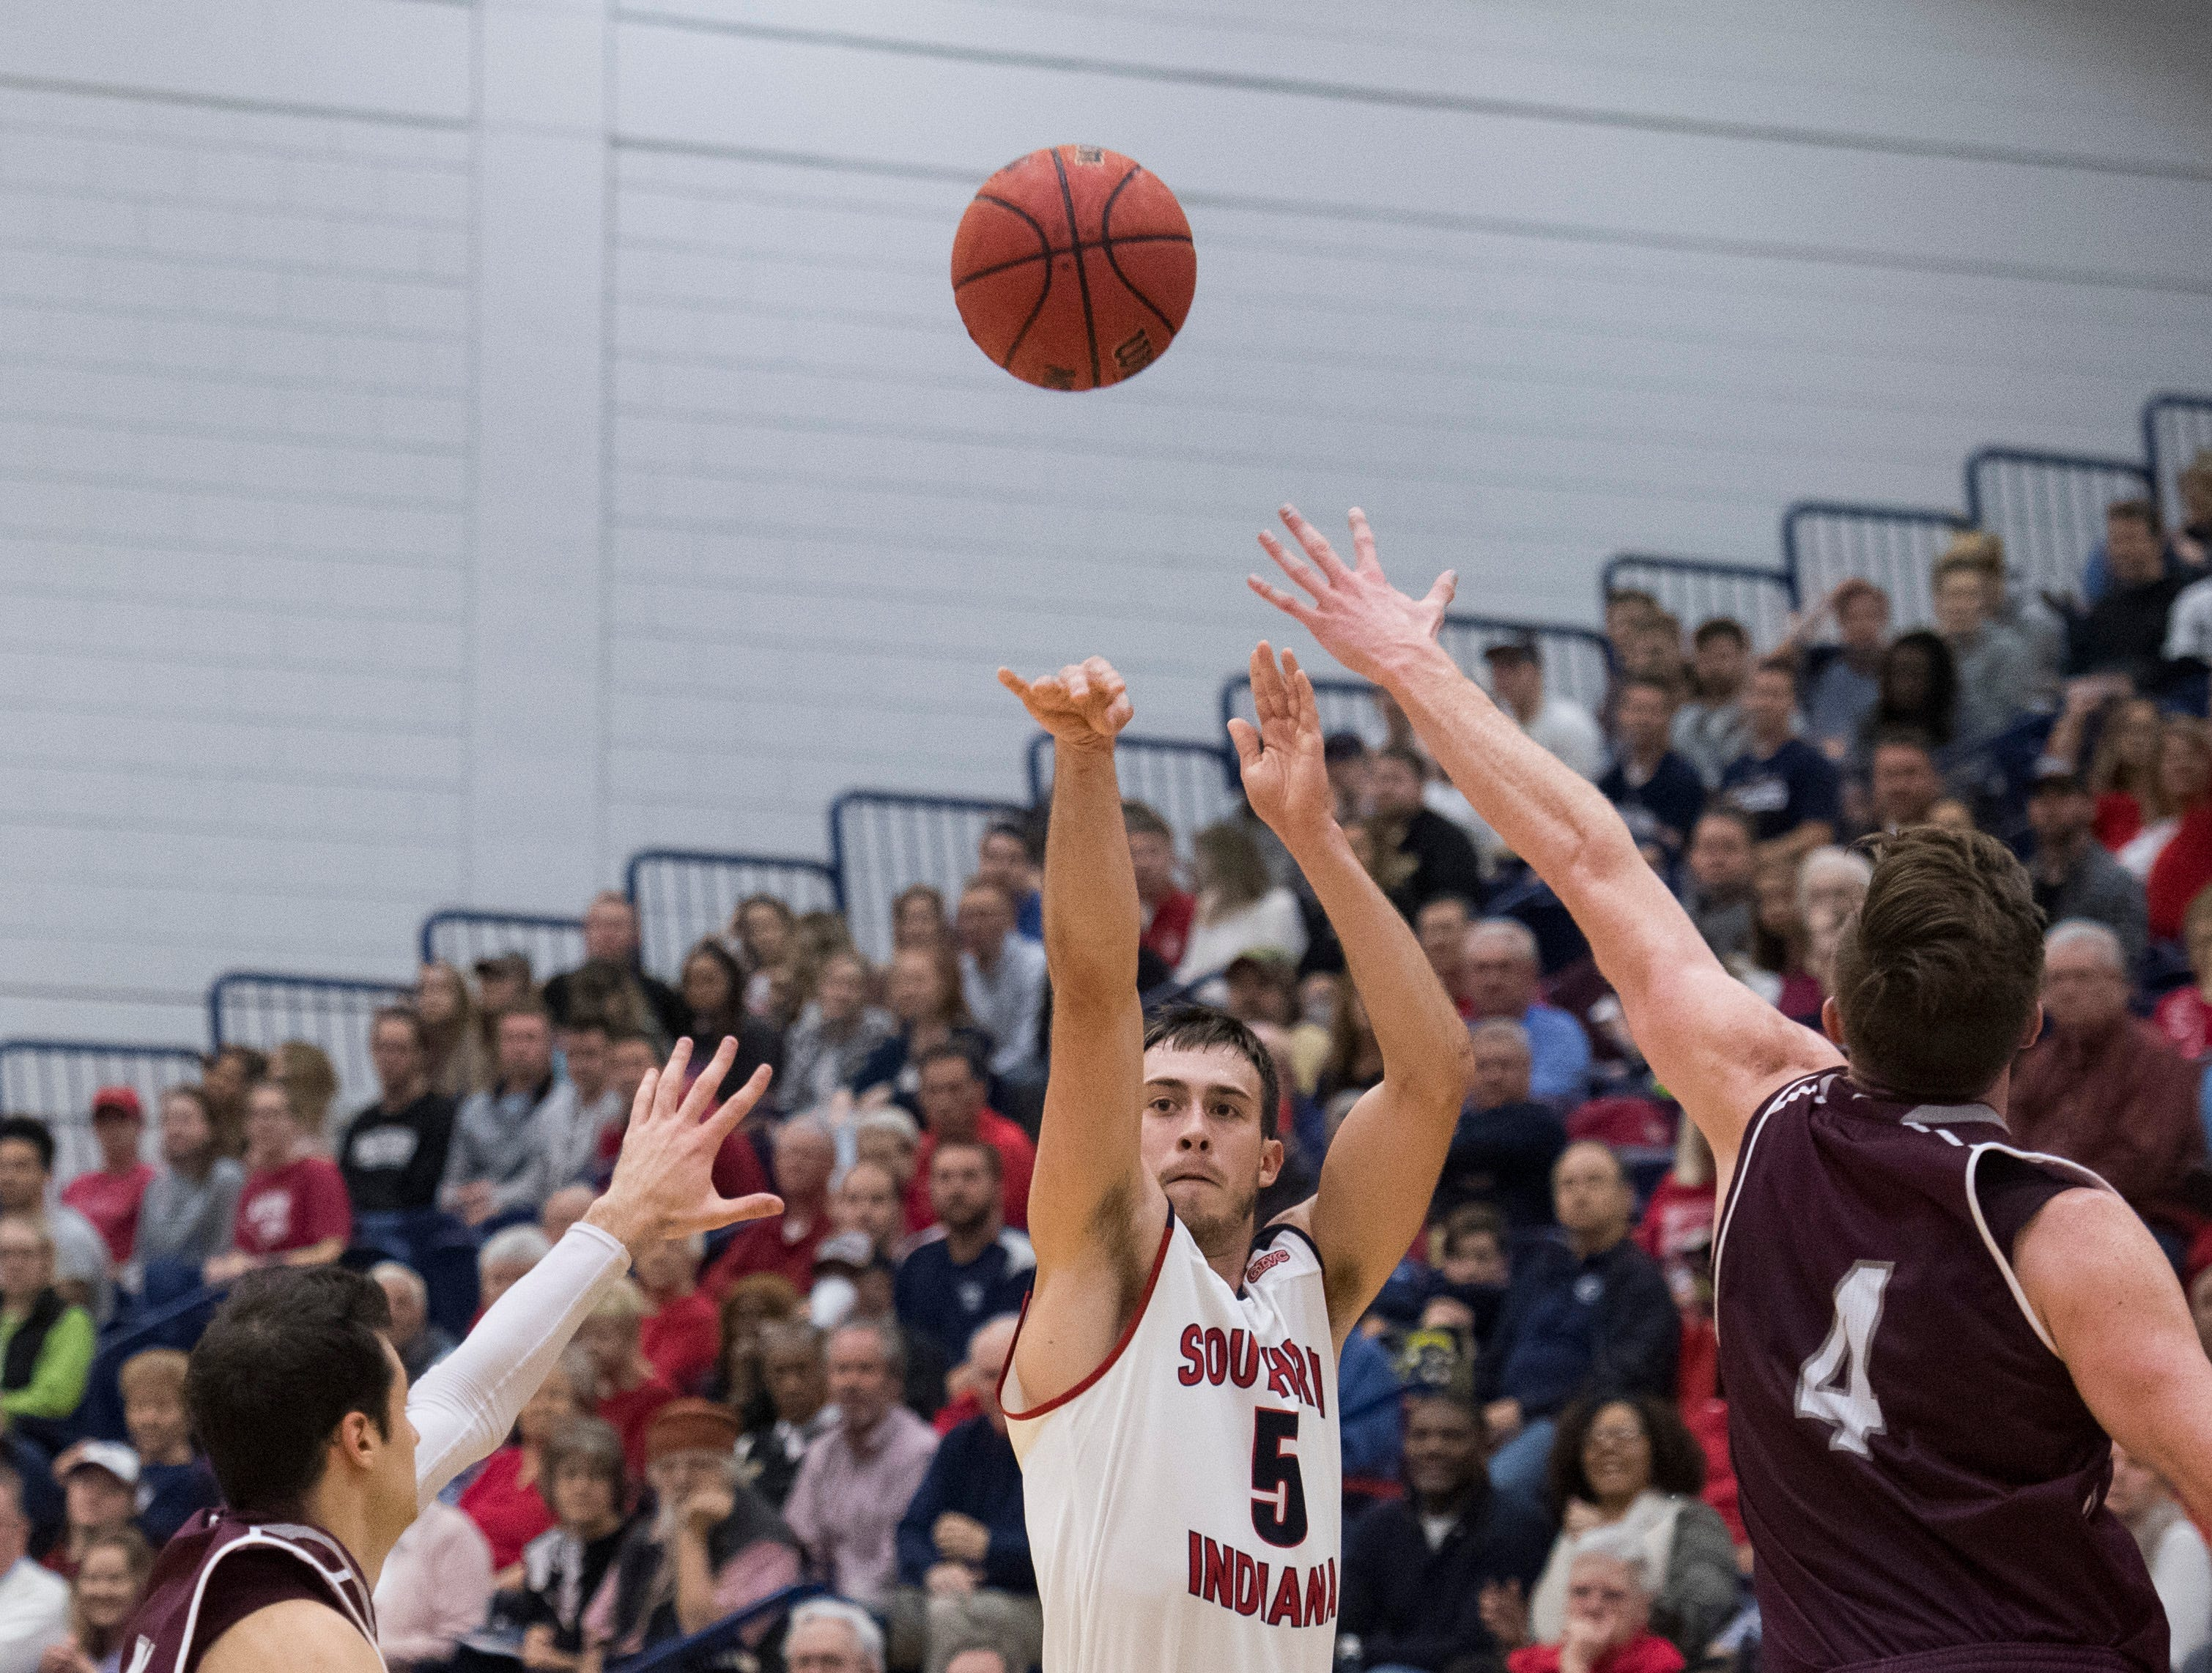 USI's Nate Hansen (5) takes a 3-point shot during the first half of the USI vs Bellarmine basketball game at the PAC Saturday, Dec. 1, 2018.